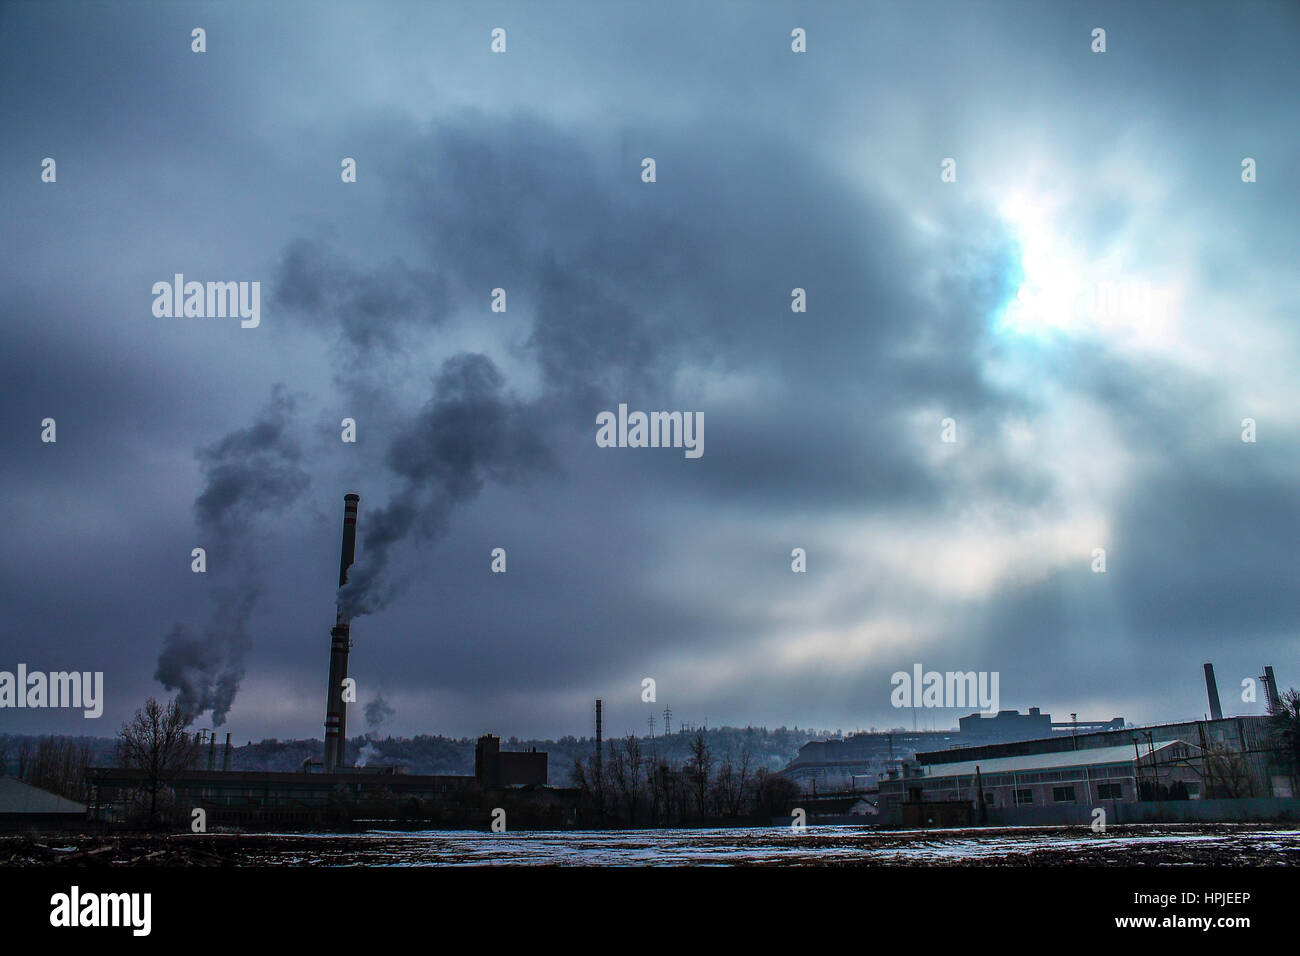 Ecological disaster - pollution - Stock Image